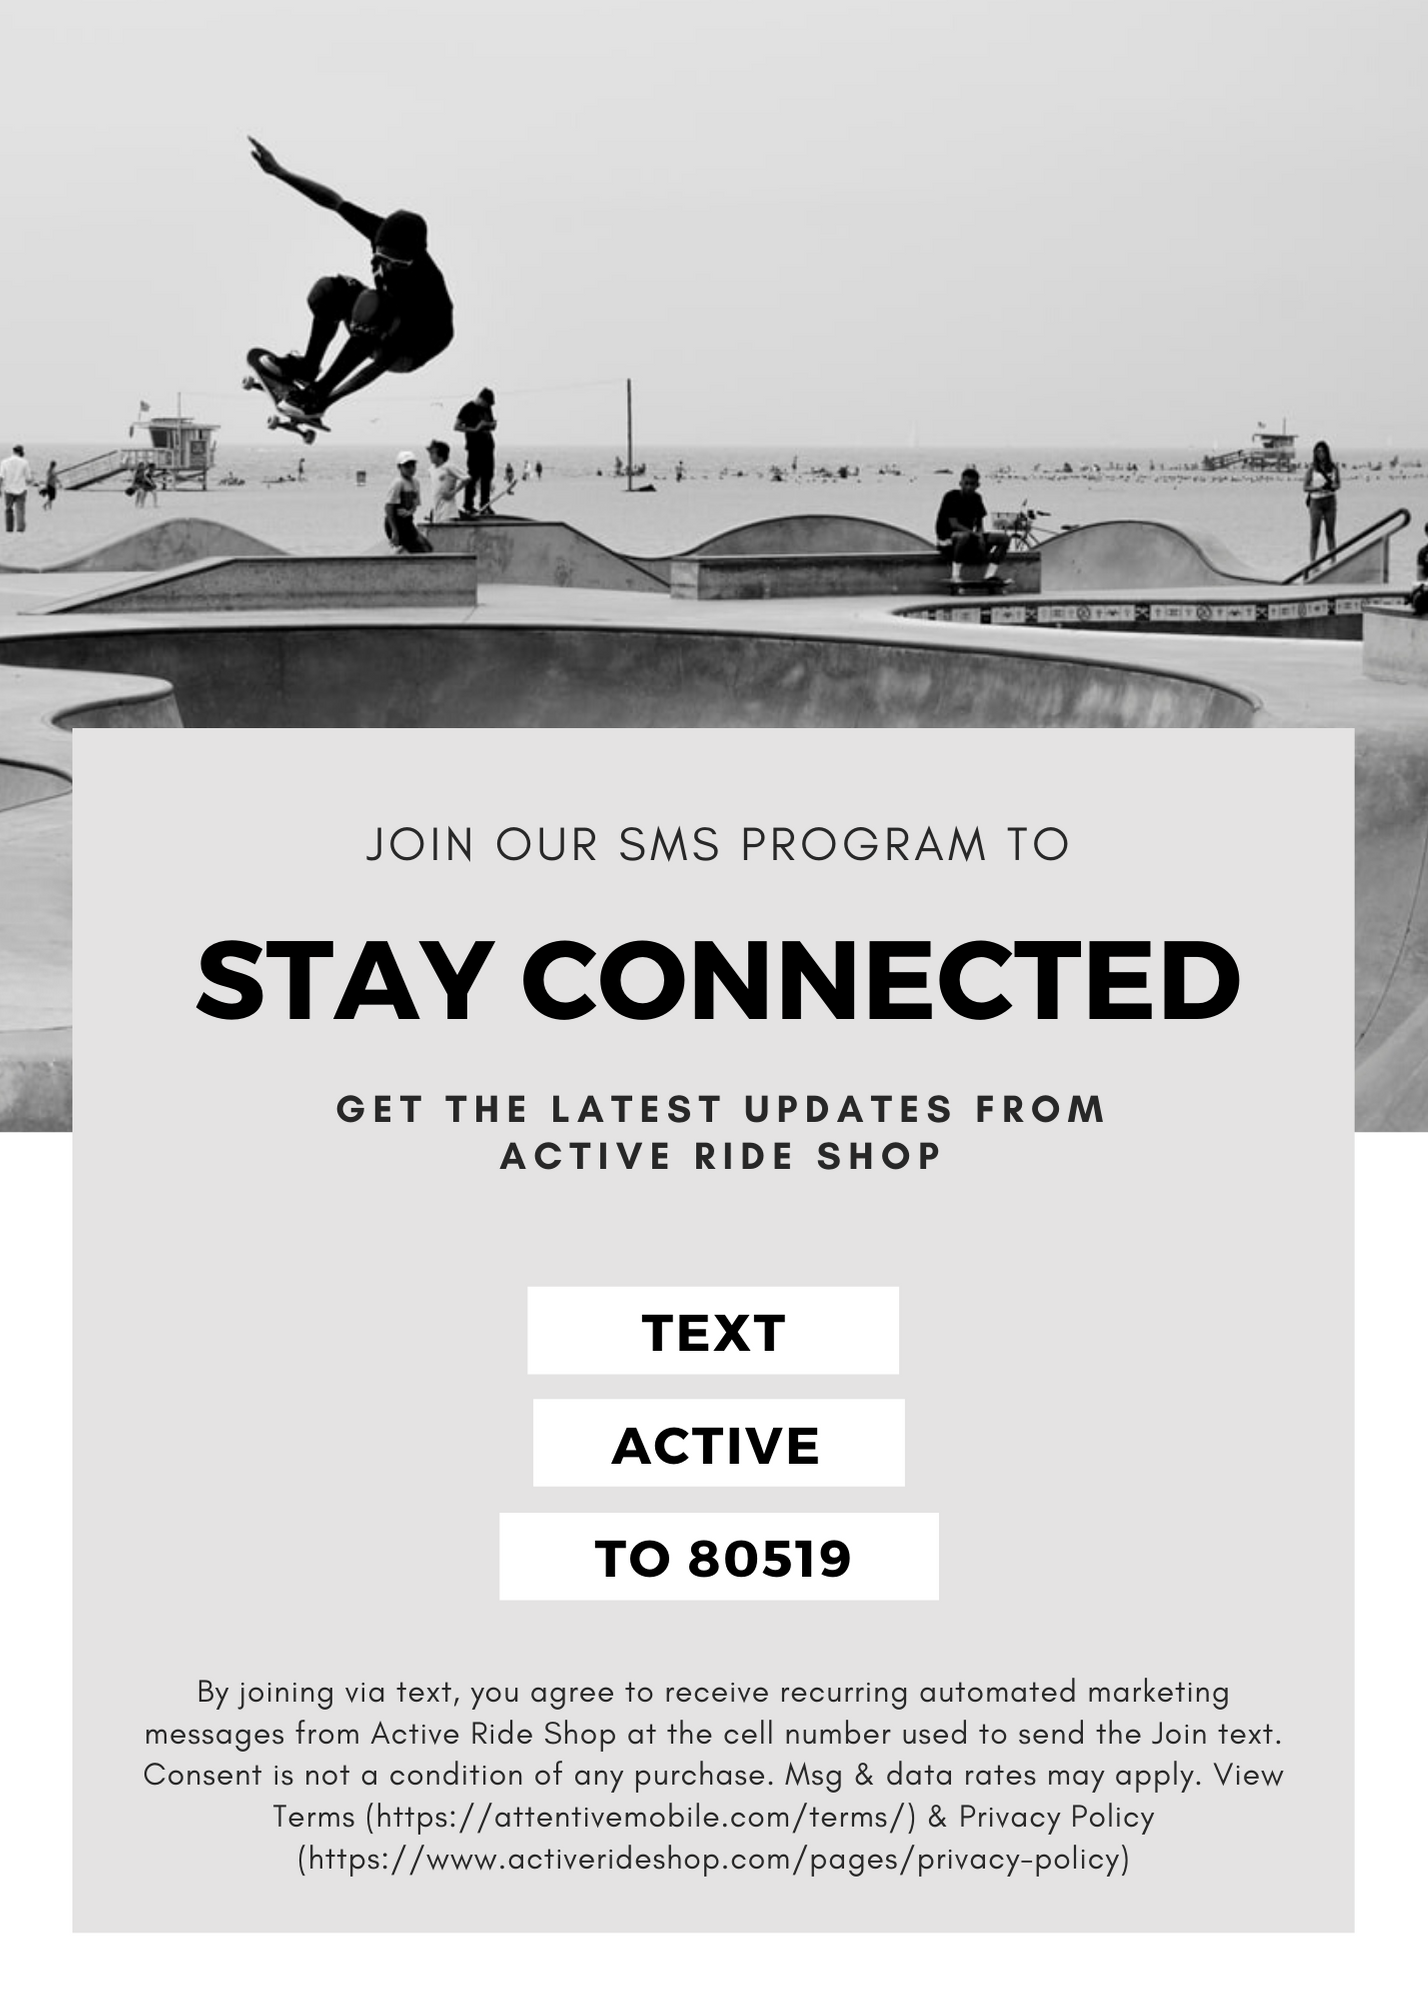 Text 80519 to join Active Ride Shops Text Program